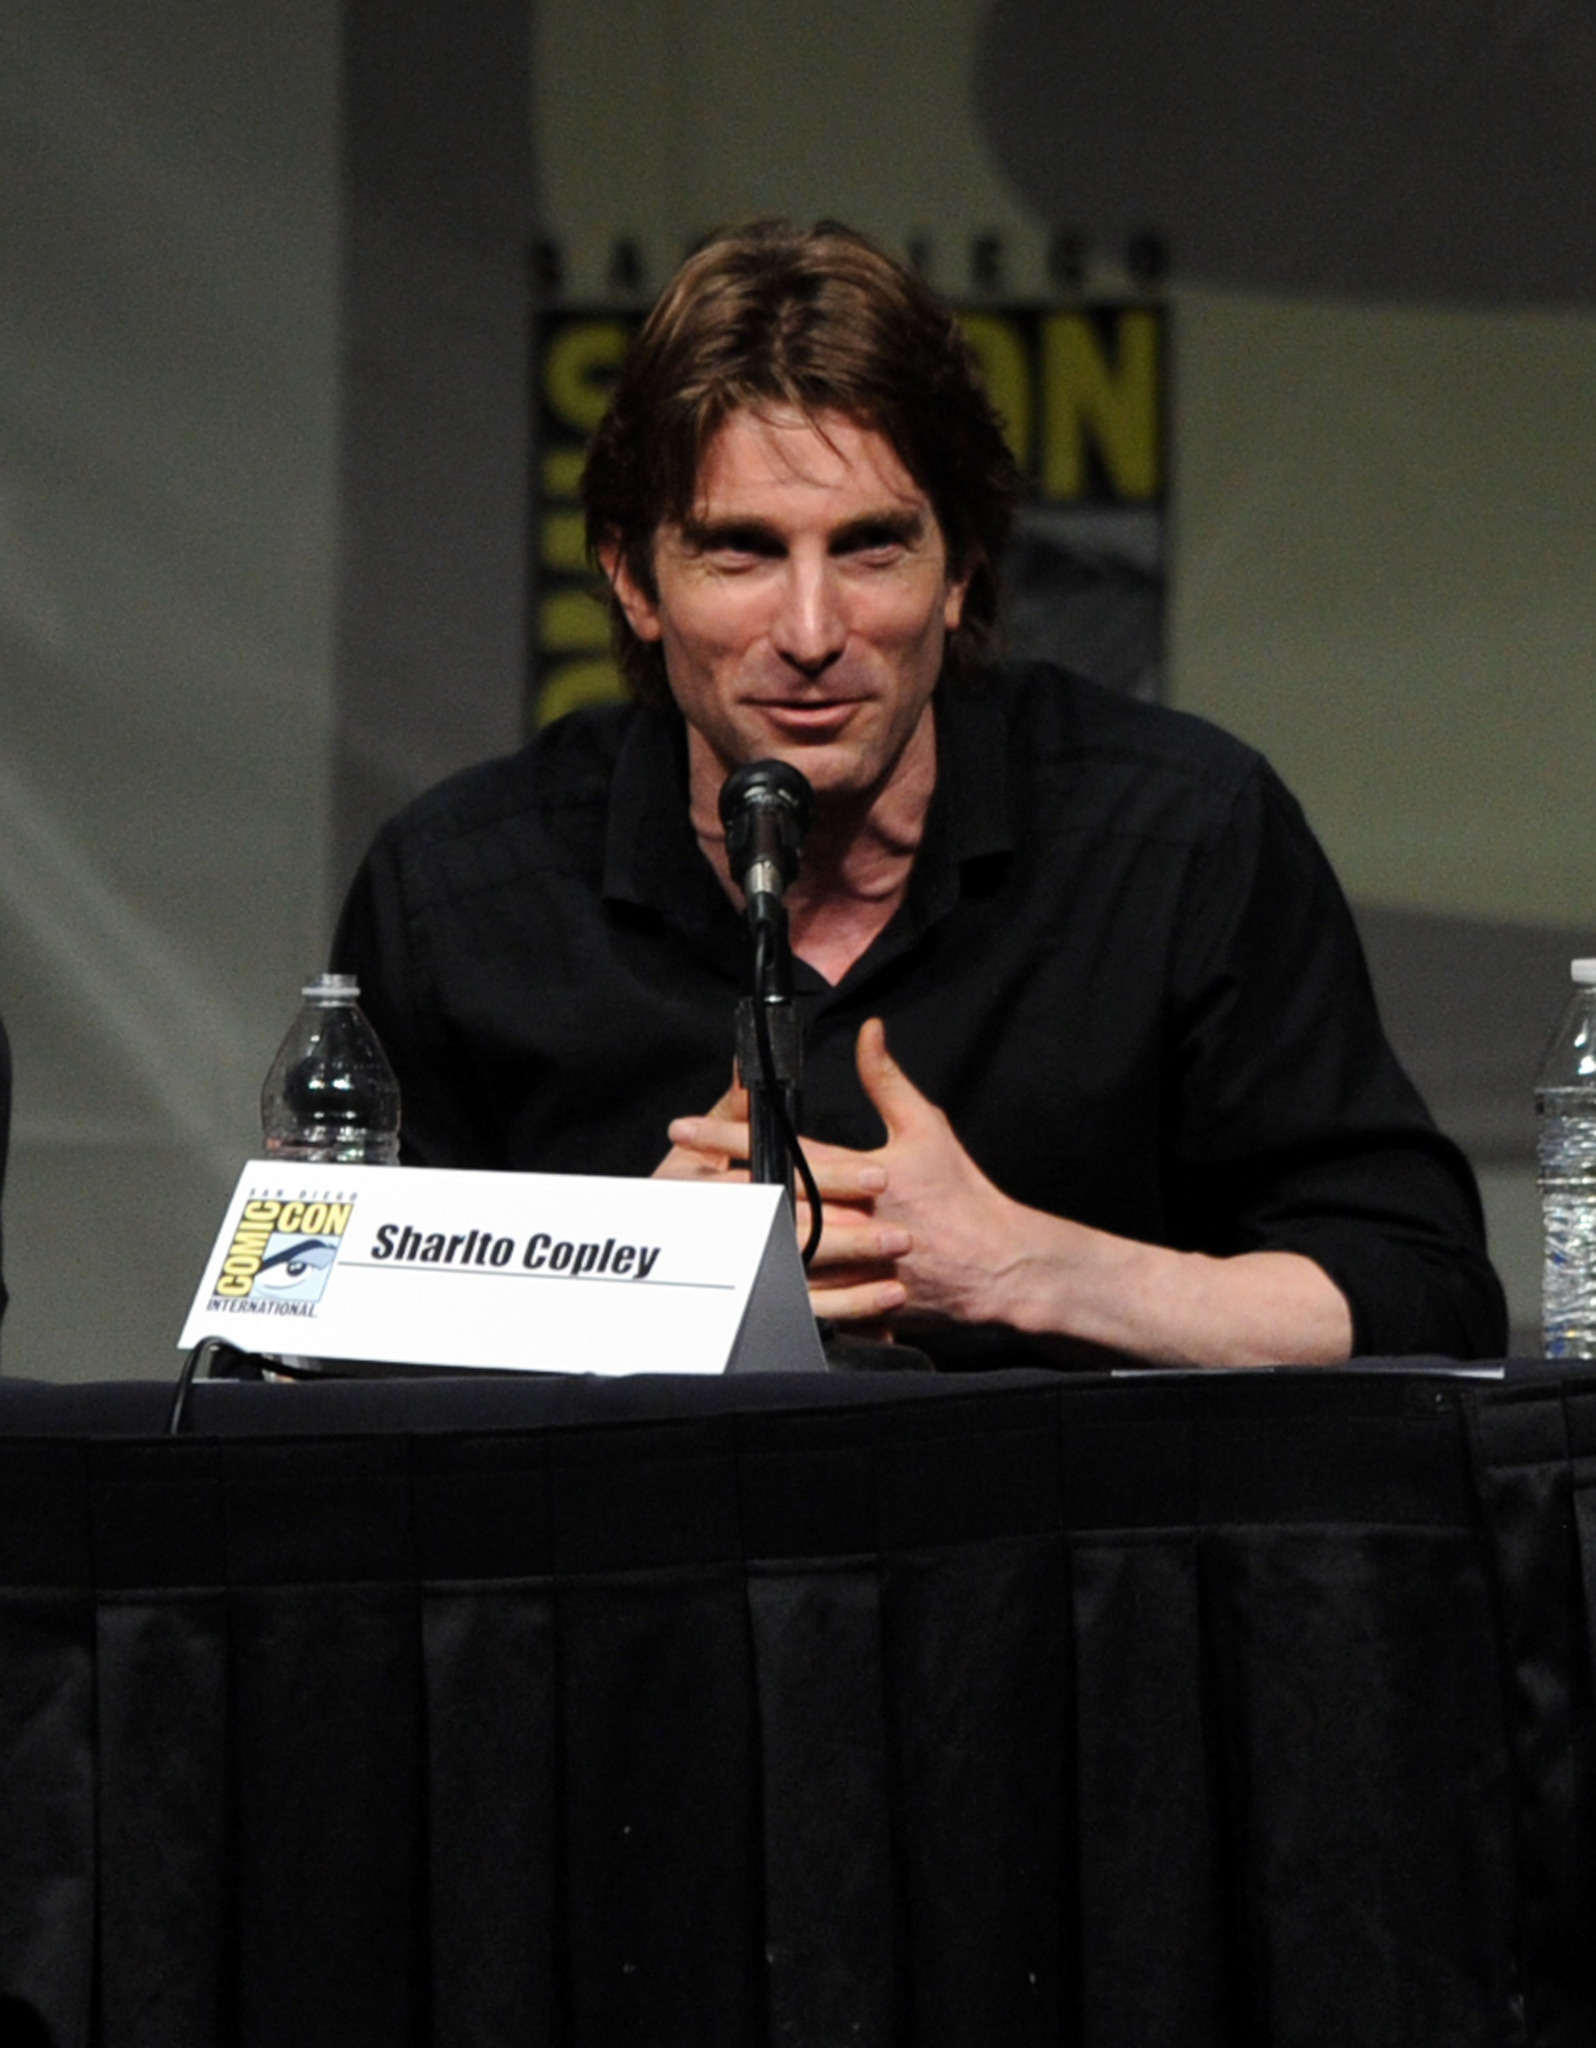 Sharlto Copley at an event for Elysium (2013)